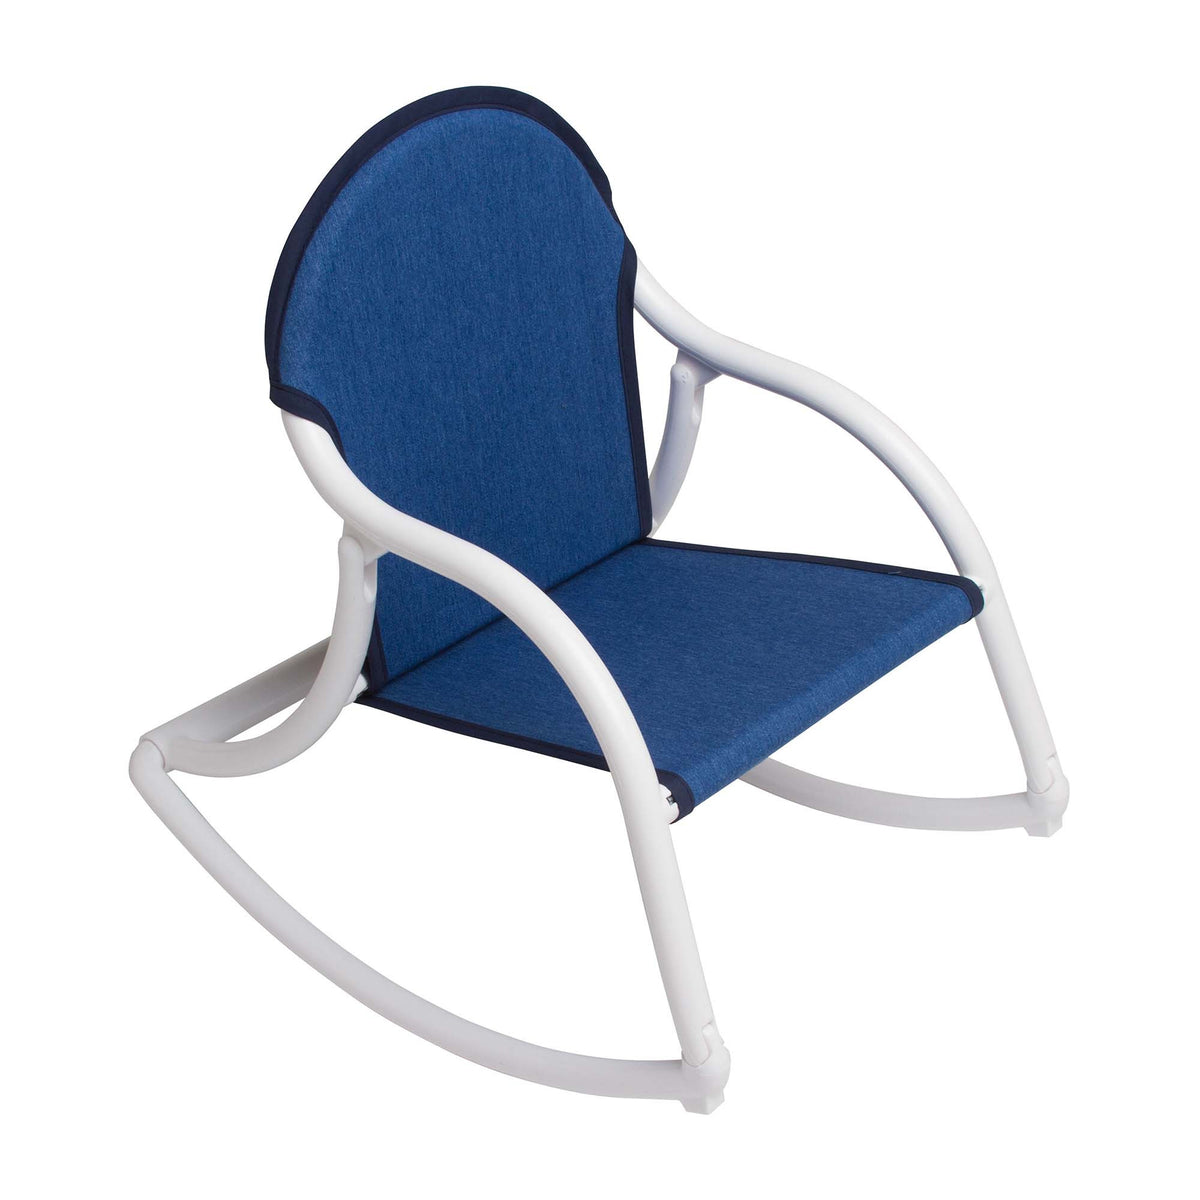 Astounding Personalized Childrens Rocking Chair Bralicious Painted Fabric Chair Ideas Braliciousco